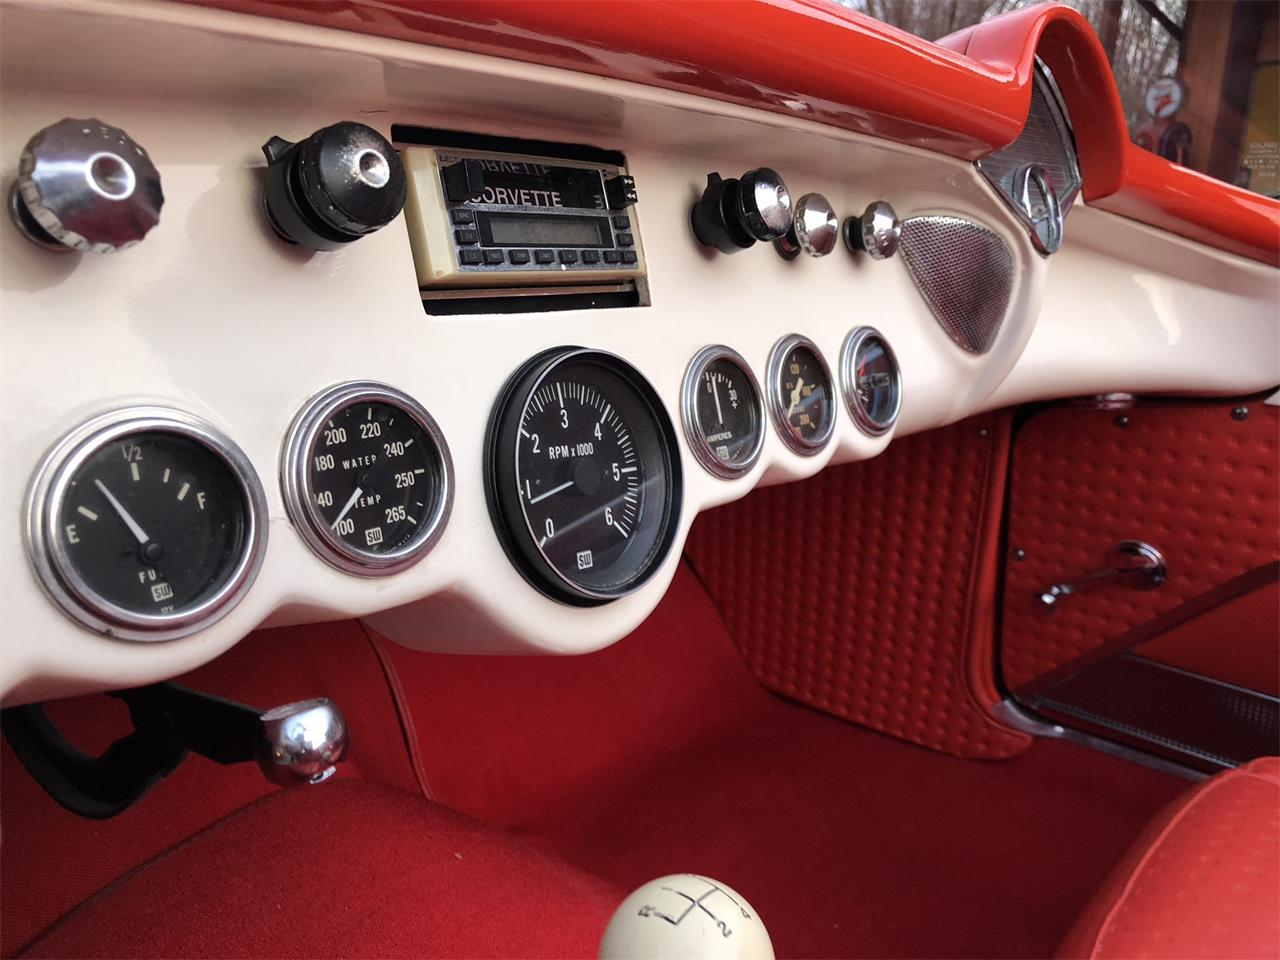 Large Picture of '57 Chevrolet Corvette located in Indiana Offered by Earlywine Auctions - MYHK